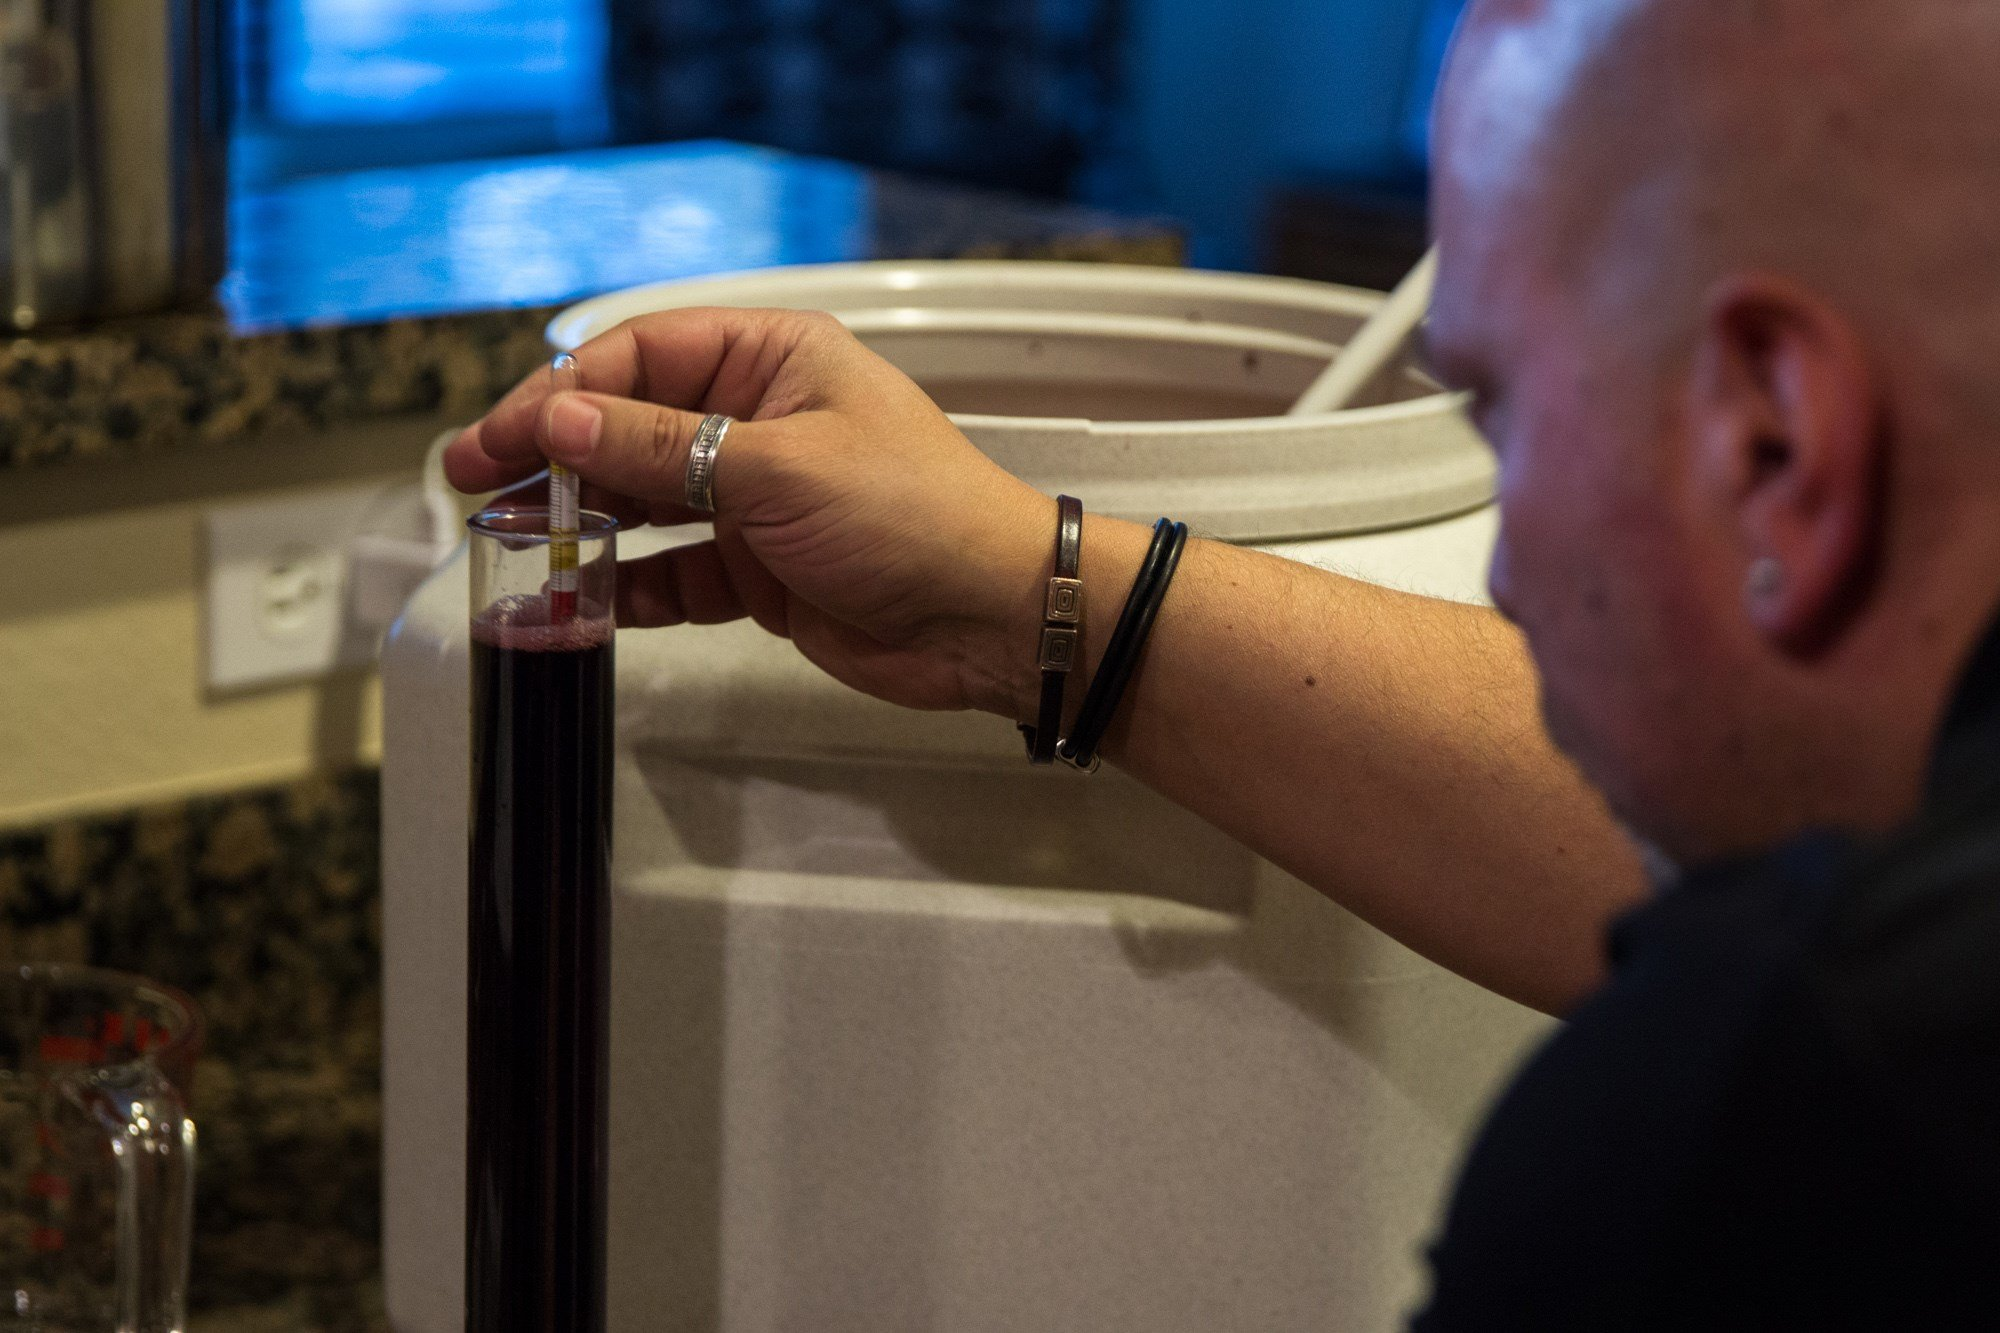 The wine must be carefully weighed and measured, which allows Louis Marconi of Chandler to detect small changes in sugar and alcohol content after fermentation. (Source: Jenna Miller/Cronkite News)